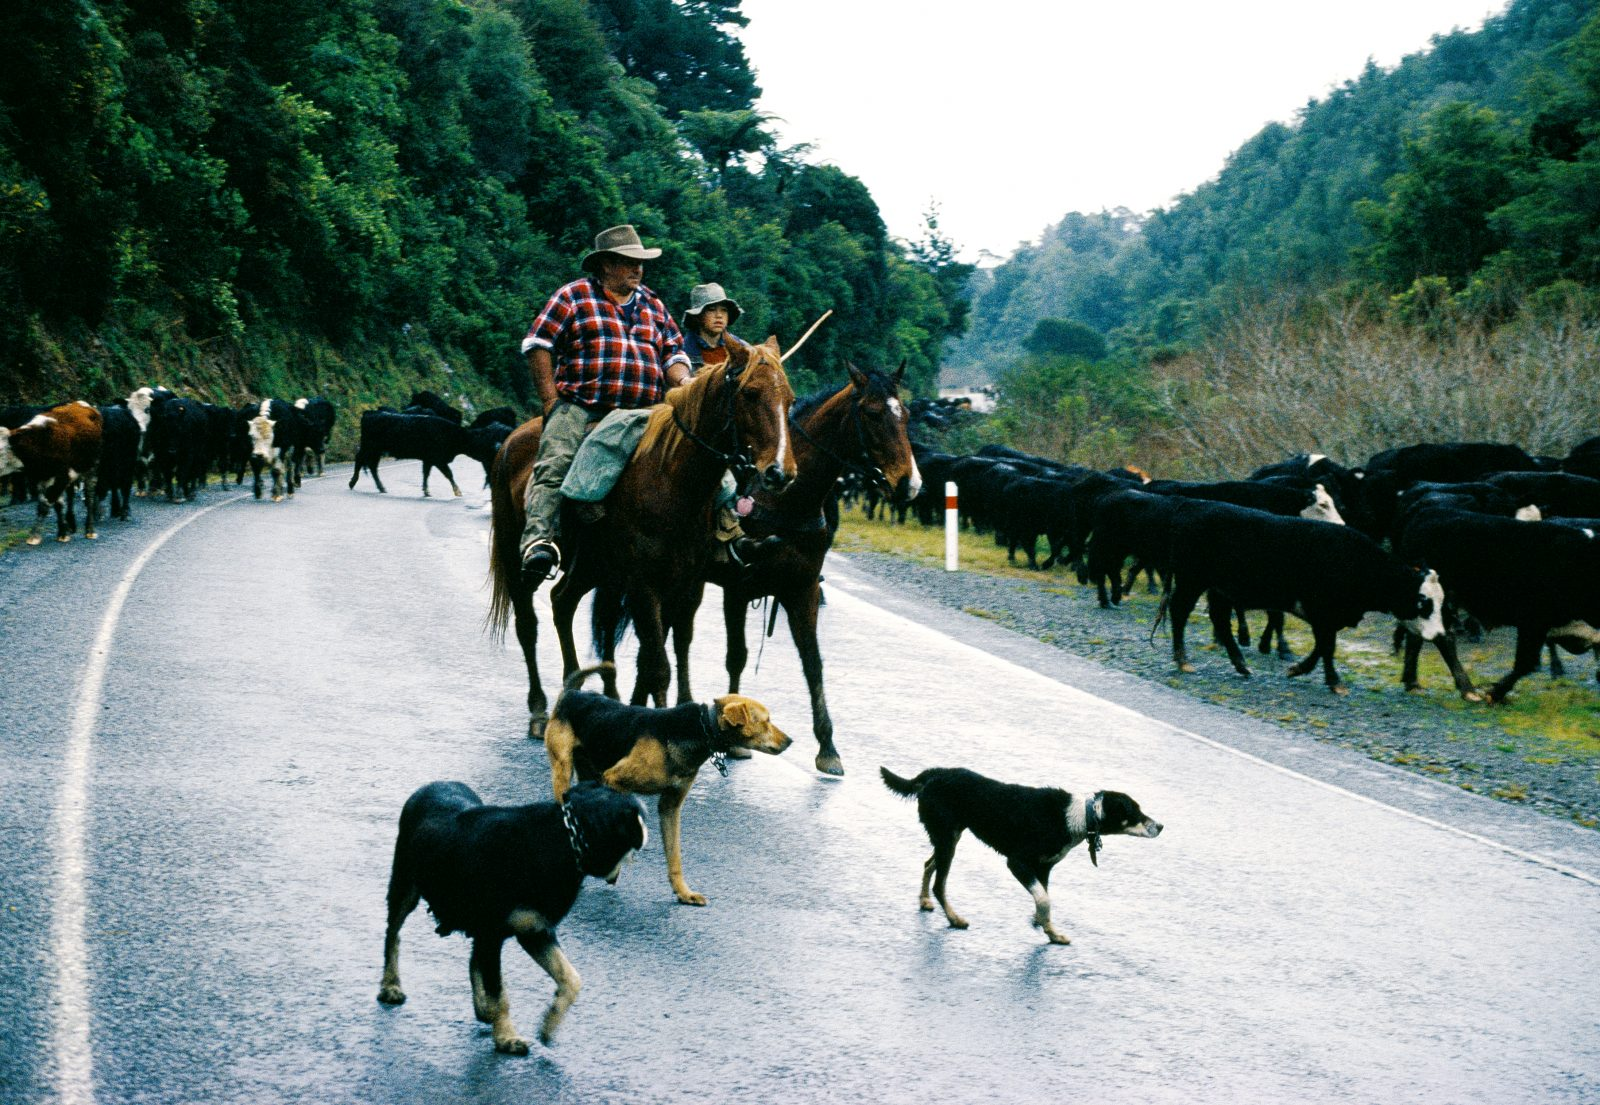 """This'll probably be young Luke's first and last taste of the drover's life,"" says Ron Brown as he and his sidekick Luke Abbot herd cattle along Highway 35 near Opotiki. Mobs of up to 500 cattle used to be common on the Coast as drovers, averaging 6-7 km a day and renting night paddocks from farmers along the way, took stock to Waikato and South Auckland for slaughtering. The practice may soon be outlawed as traffic counts rise and the number of logging trucks increases. But with an estimated 2.5 million sheep and 350,000 cattle, the region still enjoys the reputation of having the highest intensity of beef cattle in the country."